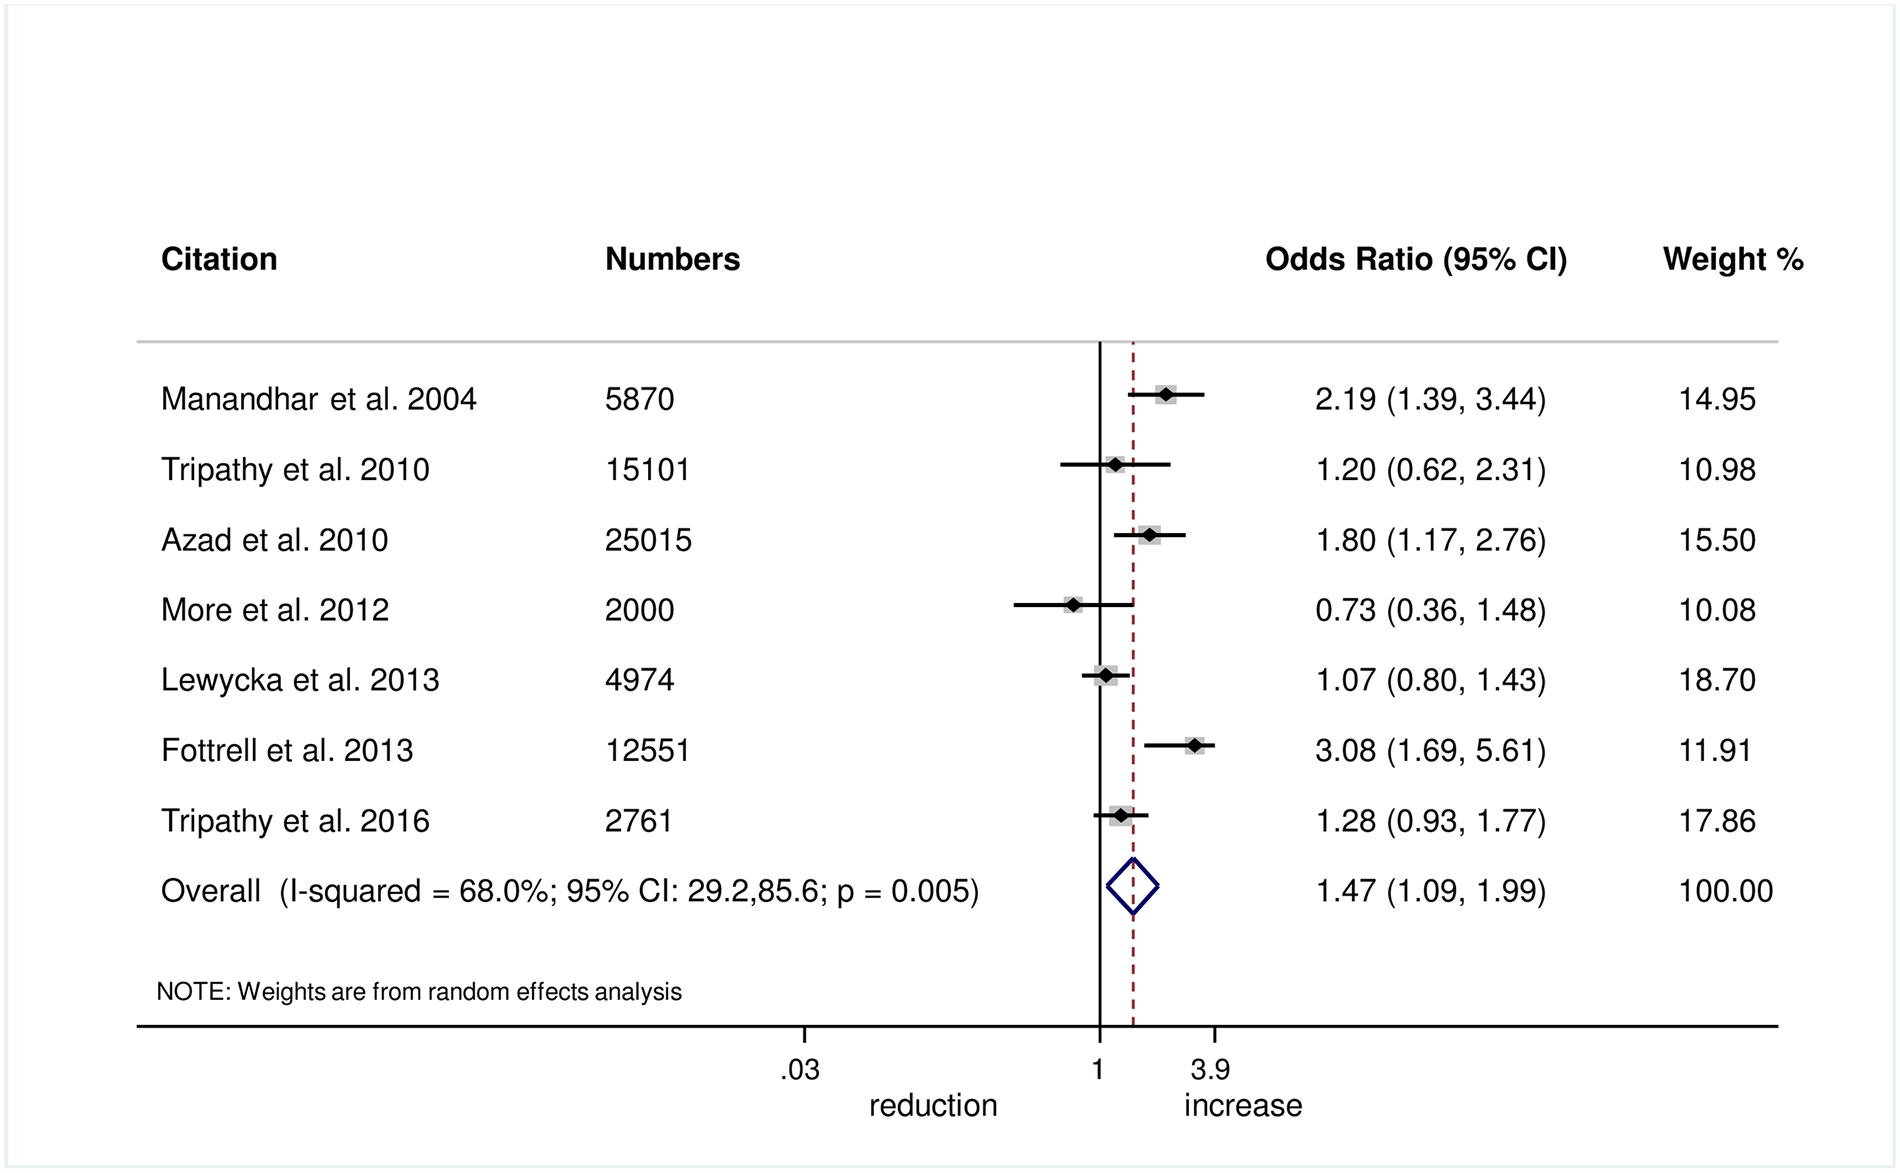 Meta-analysis of the effect of women's groups on delaying bathing of a newborn for at least 24 hours after delivery for home deliveries.